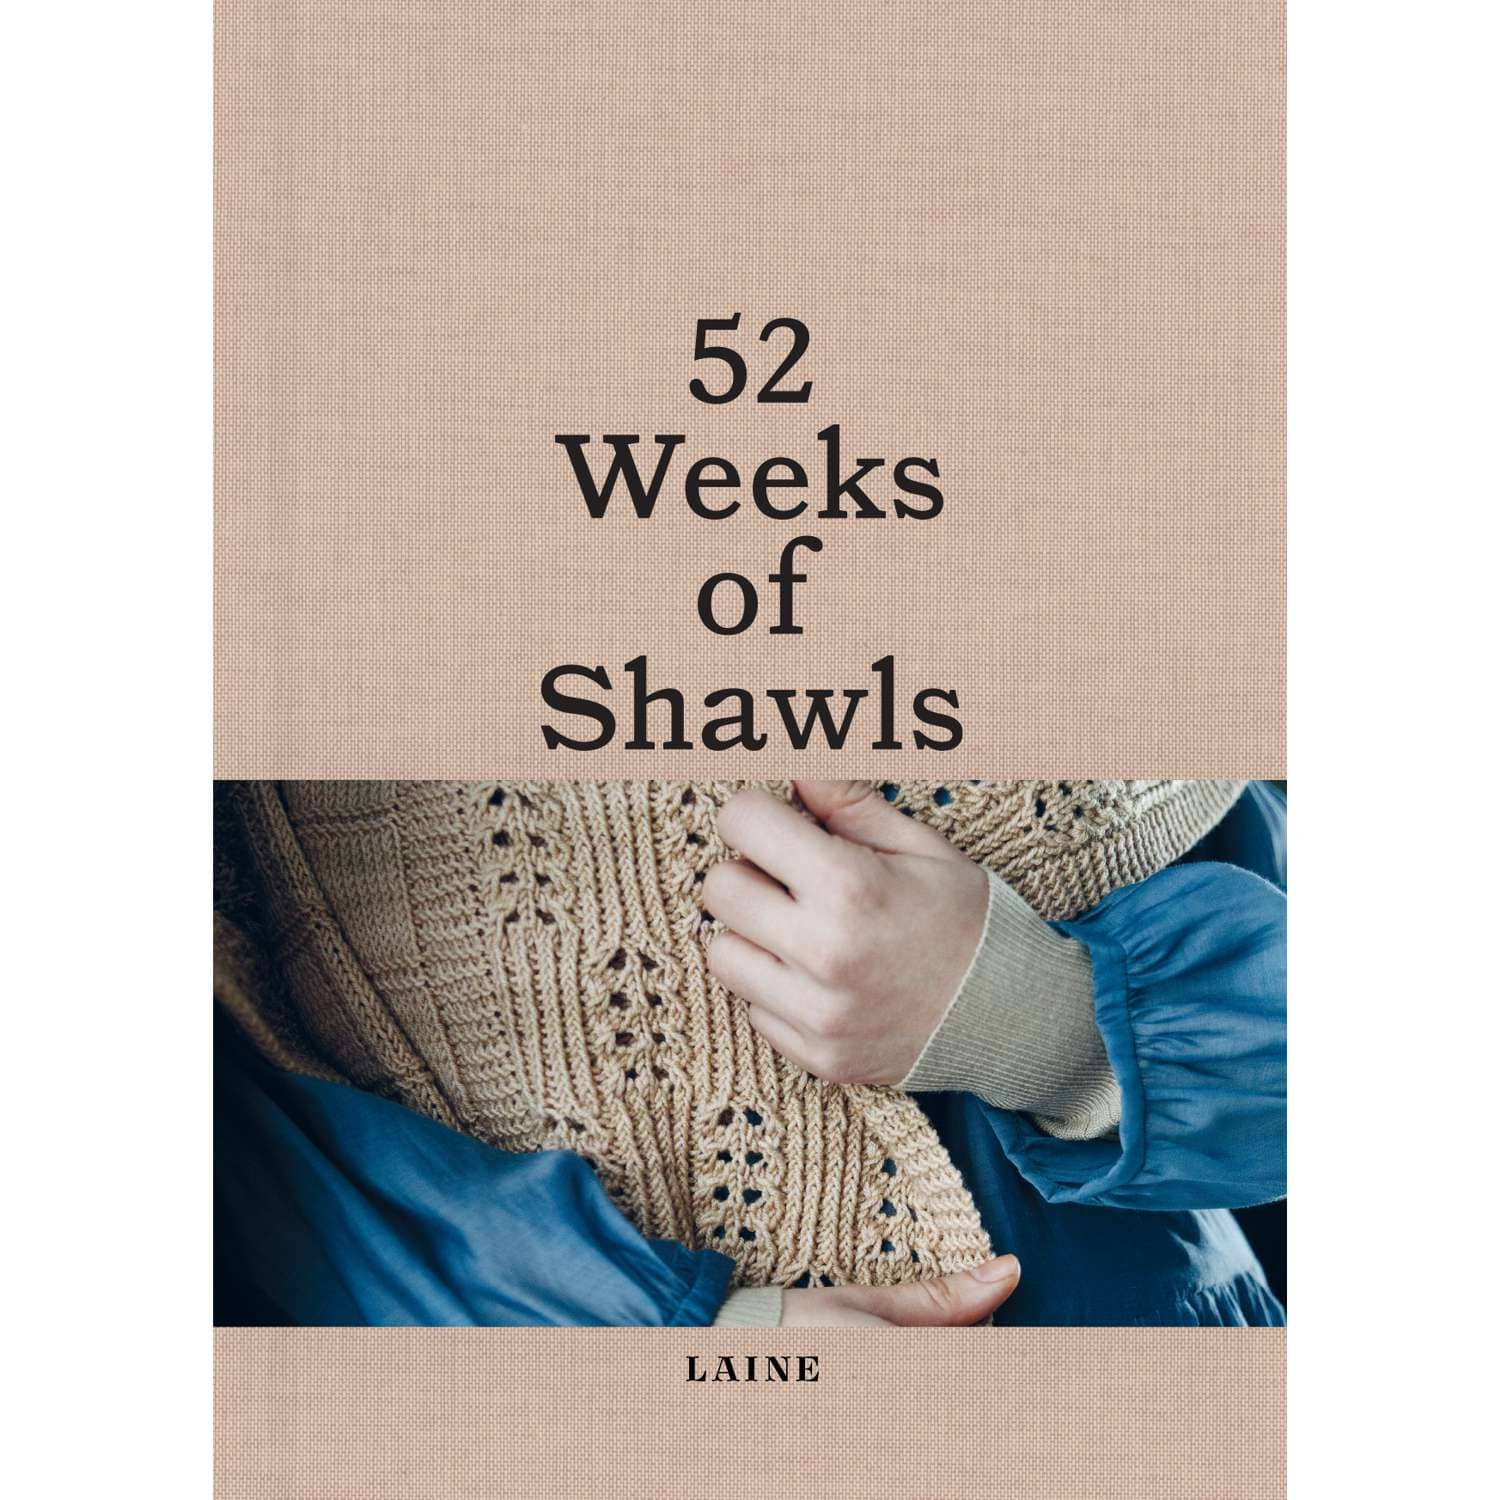 Laine - 52 Weeks of Shawls | Yarn Worx